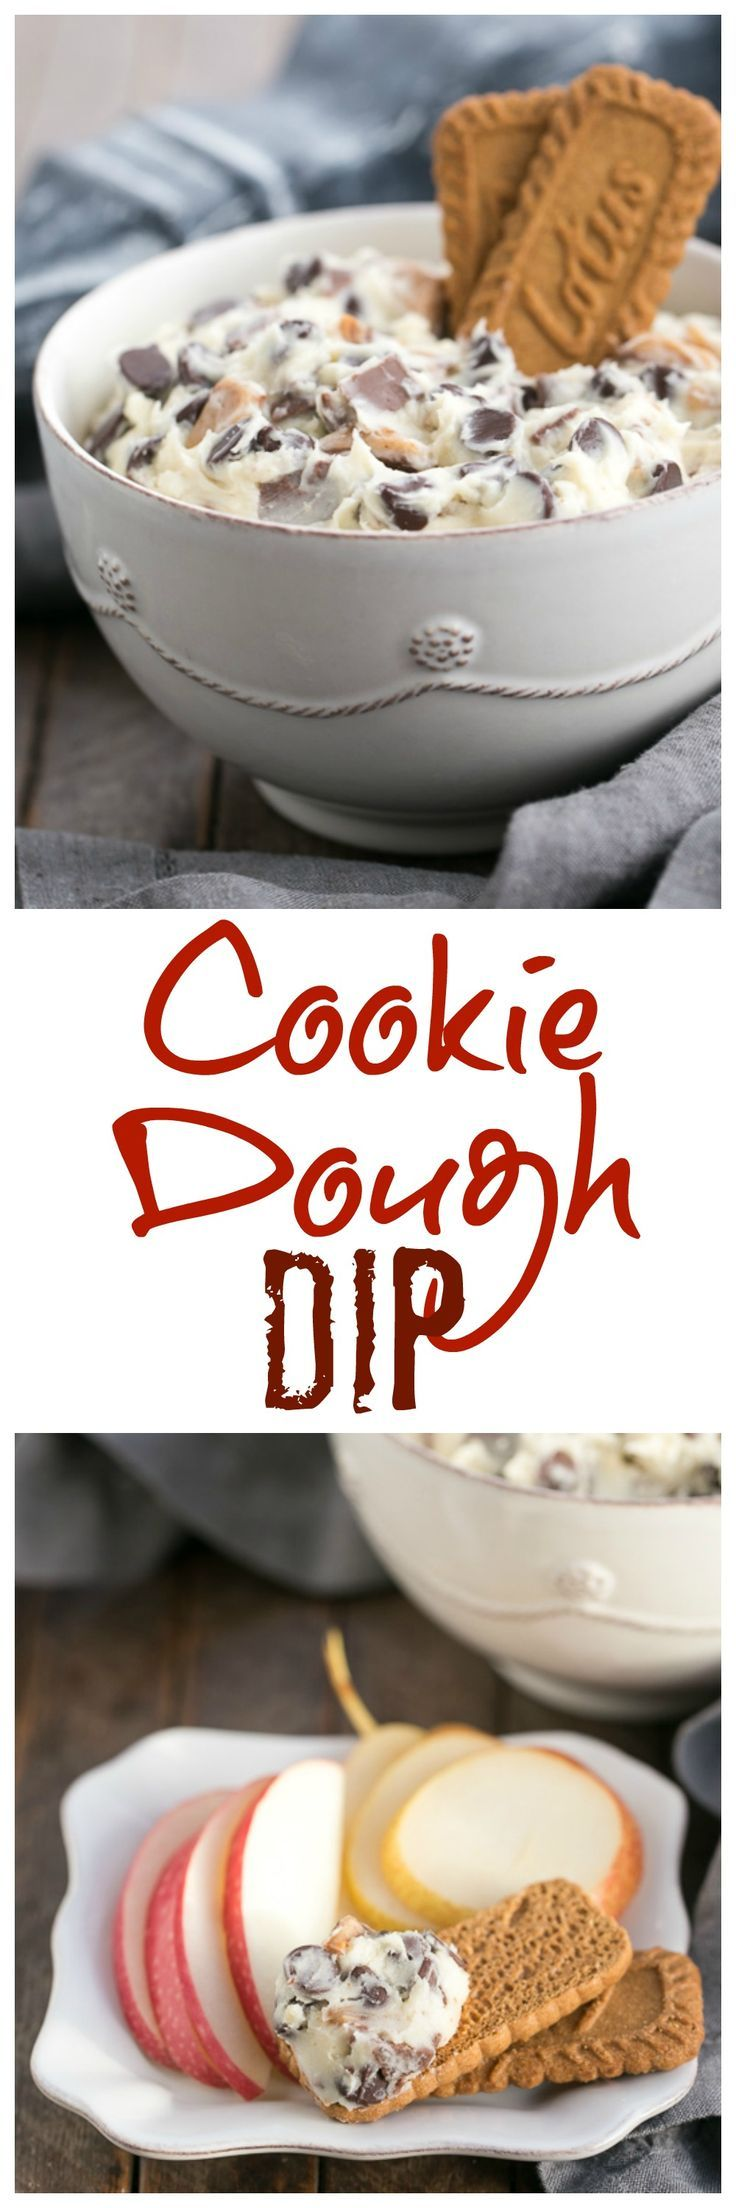 Cookie Dough Dip | A dreamy dip filled with chocolate chips and toffee pieces! @lizzydo